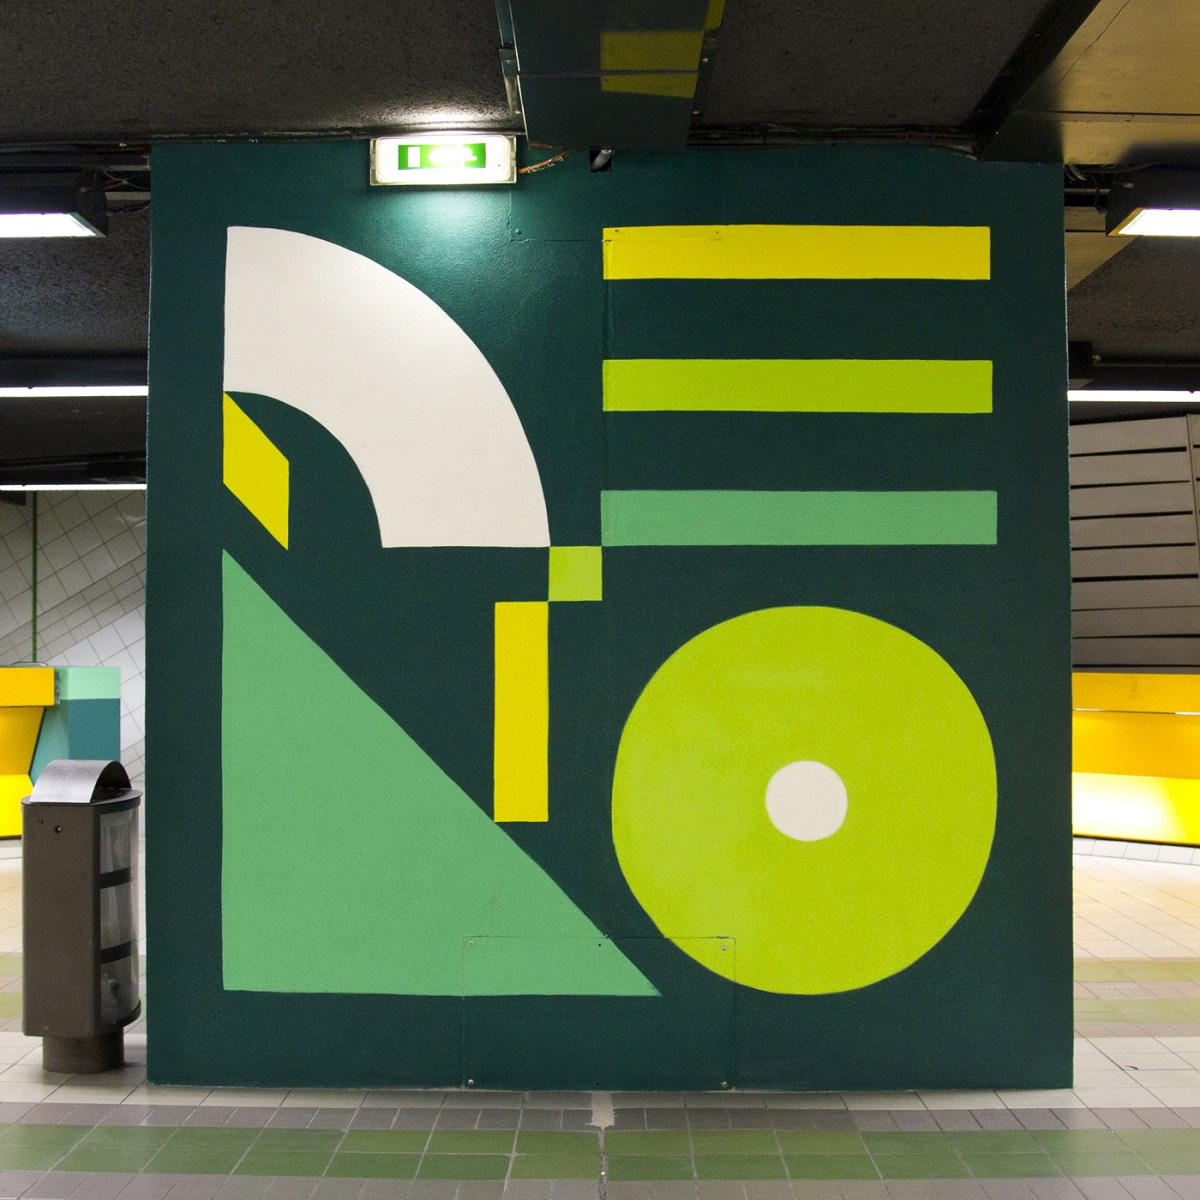 nelio-new-mural-at-station-mermoz-in-lyon-08